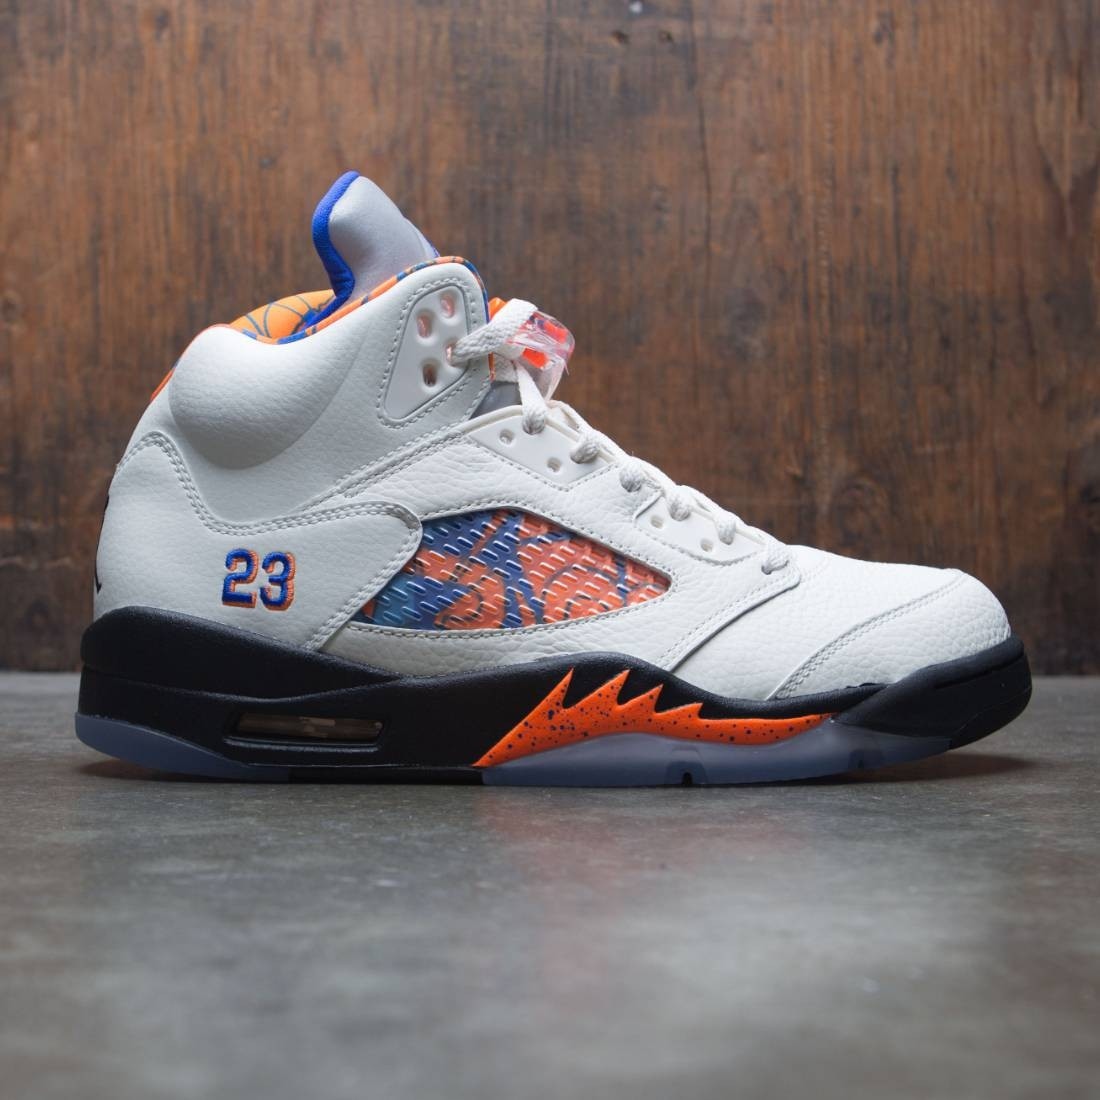 huge discount 09958 821fd jordan men air jordan 5 retro sail racer blue cone black